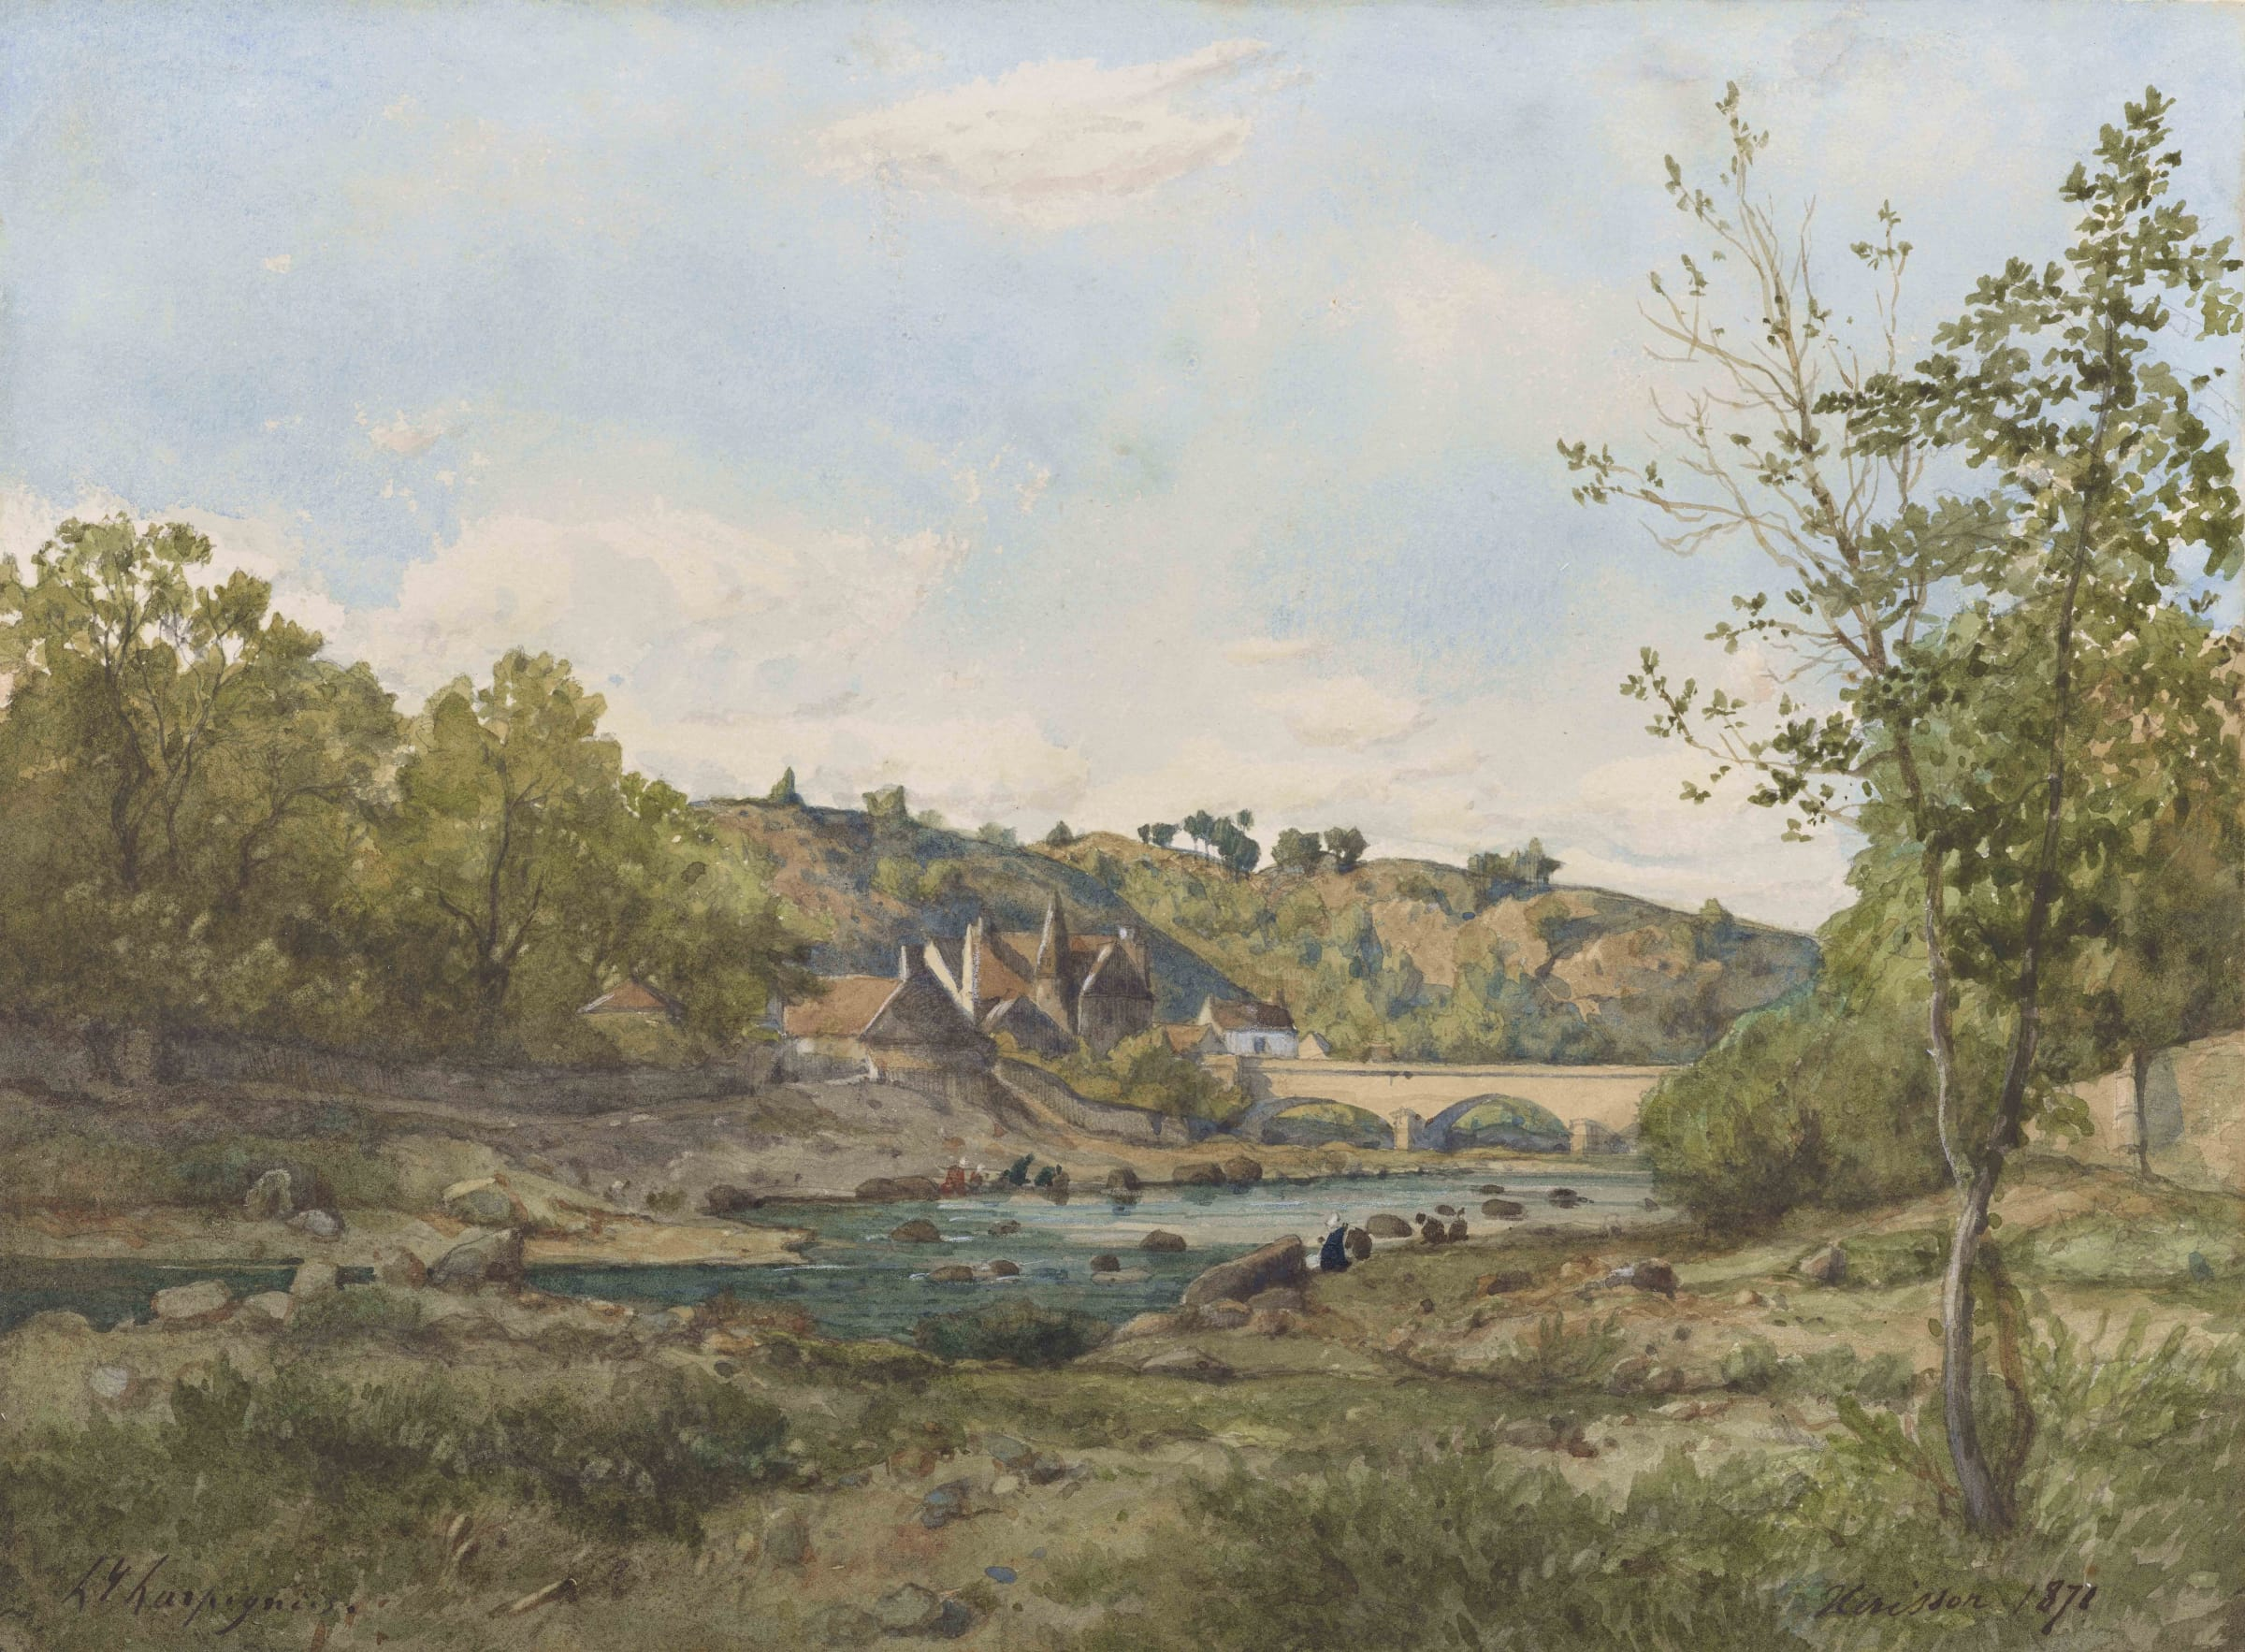 """<span class=&#34;link fancybox-details-link&#34;><a href=&#34;/artists/47-henri-joseph-harpignies/works/9392-henri-joseph-harpignies-vue-d-h-risson-1871/&#34;>View Detail Page</a></span><div class=&#34;artist&#34;><span class=&#34;artist&#34;><strong>Henri Joseph Harpignies</strong></span></div><div class=&#34;title&#34;><em>Vue d'Hérisson</em>, 1871</div><div class=&#34;signed_and_dated&#34;>Signed """"hjharpignies"""" Dated lower right 'Hérisson 1871'</div><div class=&#34;medium&#34;>Watercolour and pencil on paper</div><div class=&#34;dimensions&#34;>25 x 33 cm<br /> 9 ½ x 13 inches</div>"""